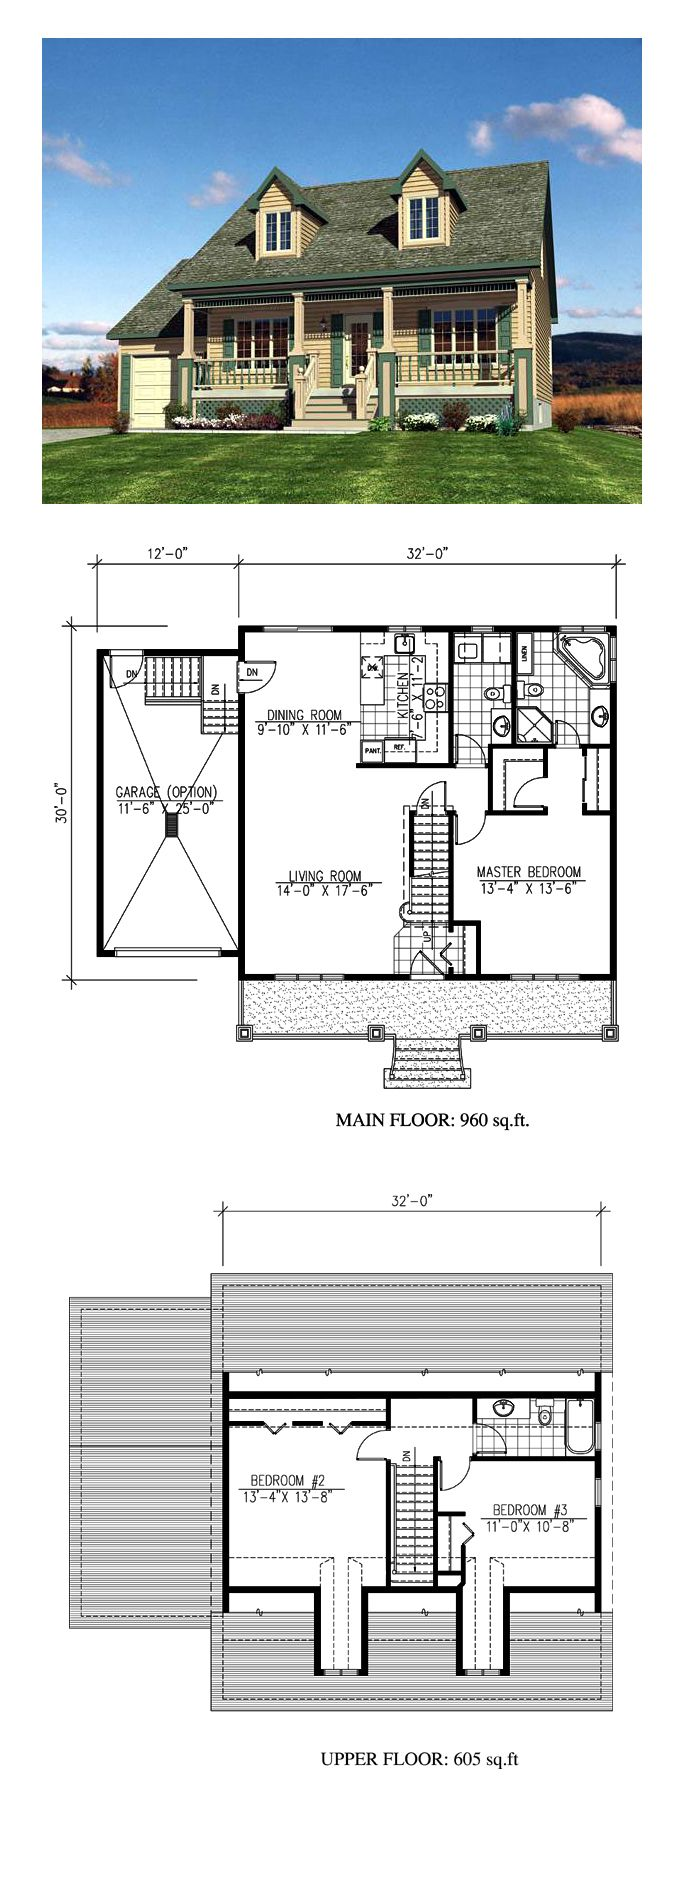 Cape Cod House Plan 48171 | Total Living Area: 1565 sq. ft., 3 bedrooms and 2 bathrooms. #houseplan #capecod